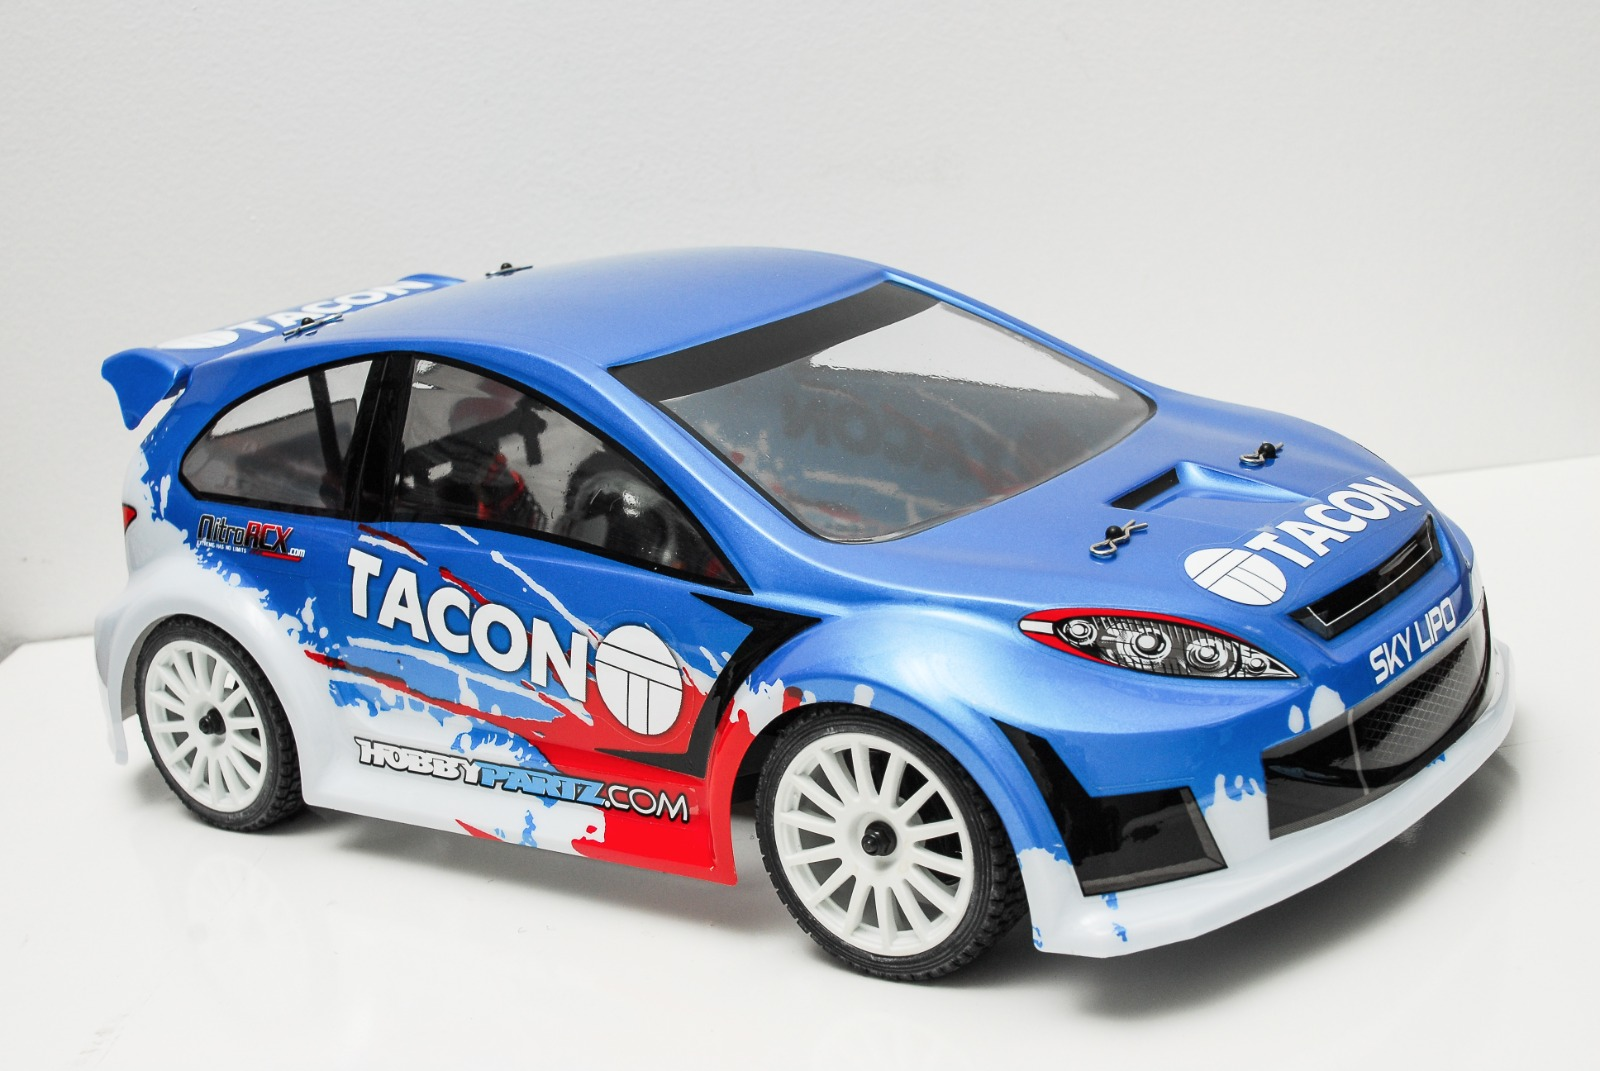 1/12th Tacon Ranger Rally Hatchback Car Brushless Motor RC Rally Car ...